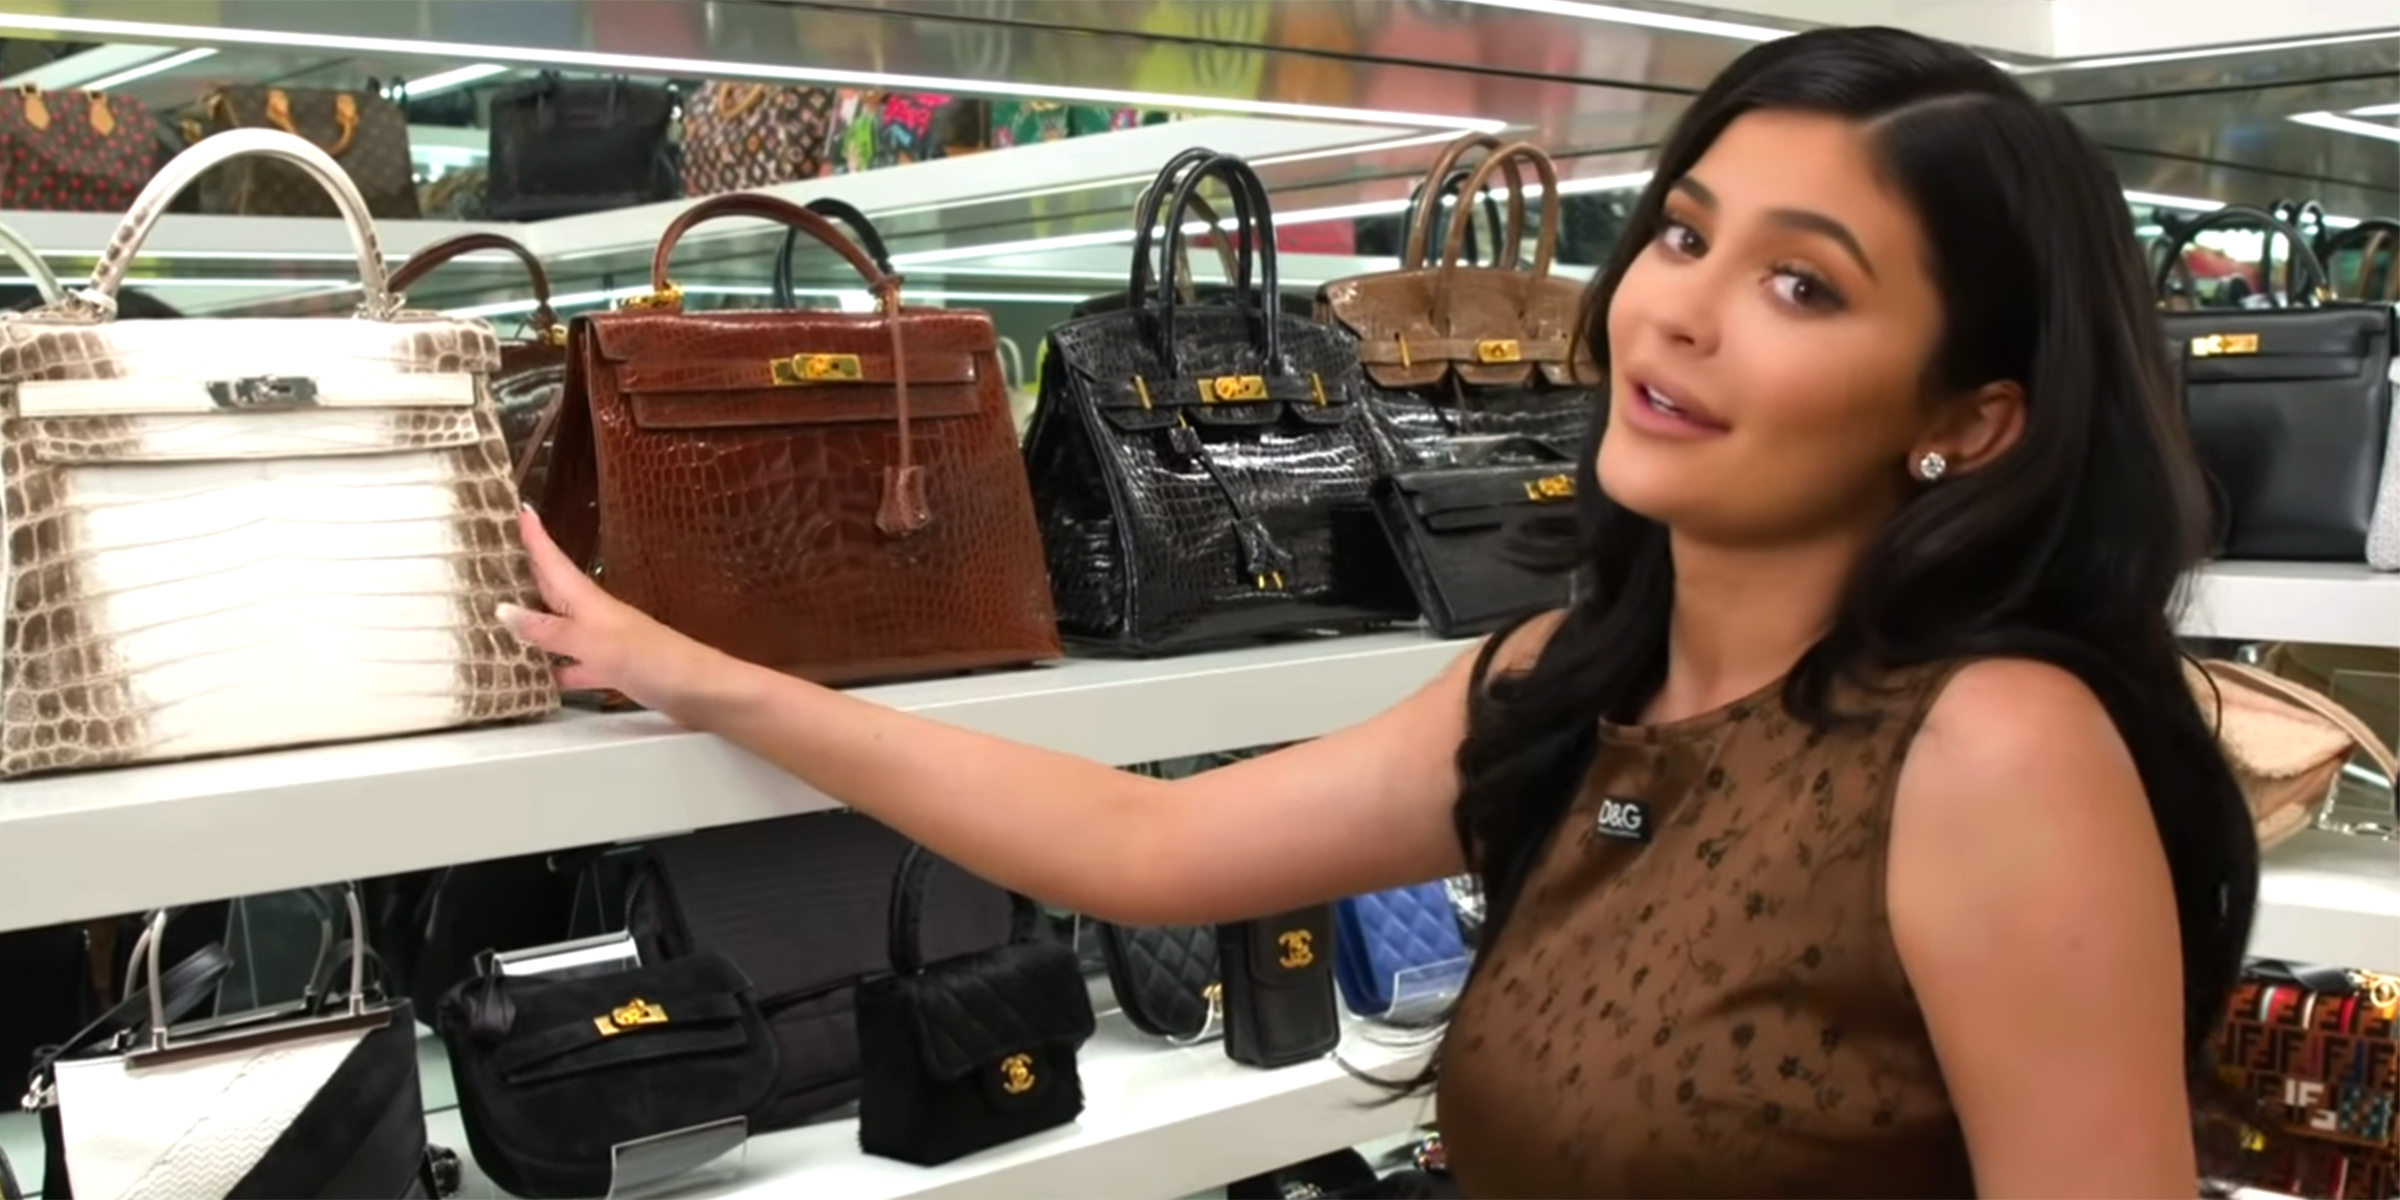 fdc9df1ccc1a Kylie Jenner's purse closet tour will make you jealous